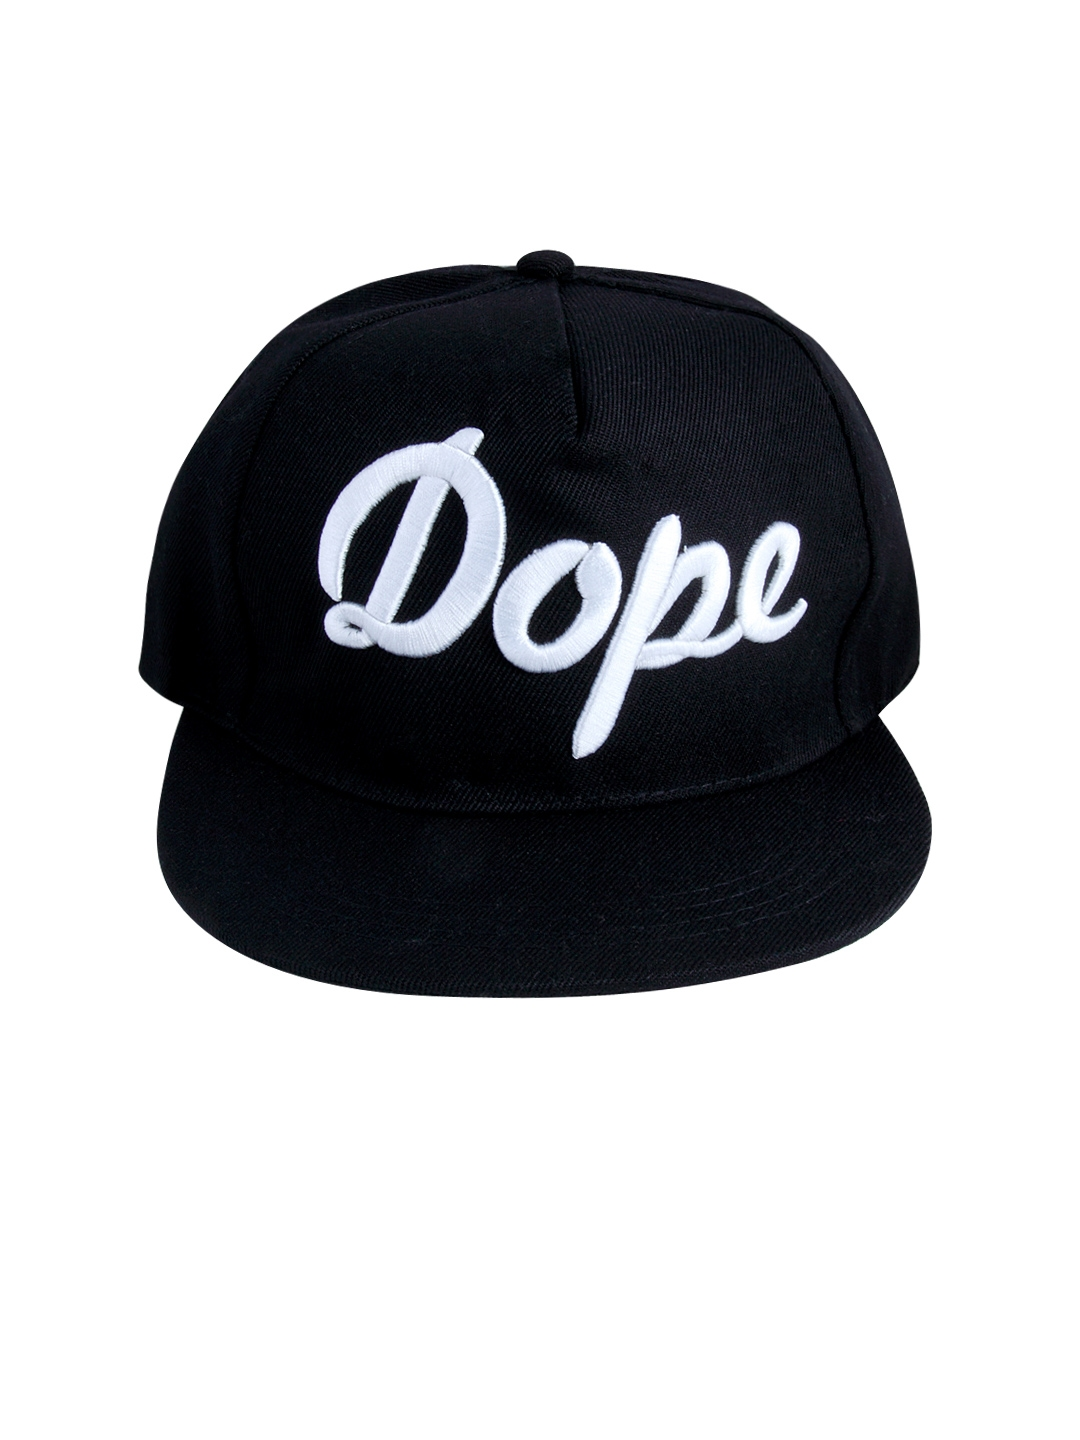 987c606e98b Buy NOISE Unisex Black Snapback Cap With Embroidery - Caps for ...